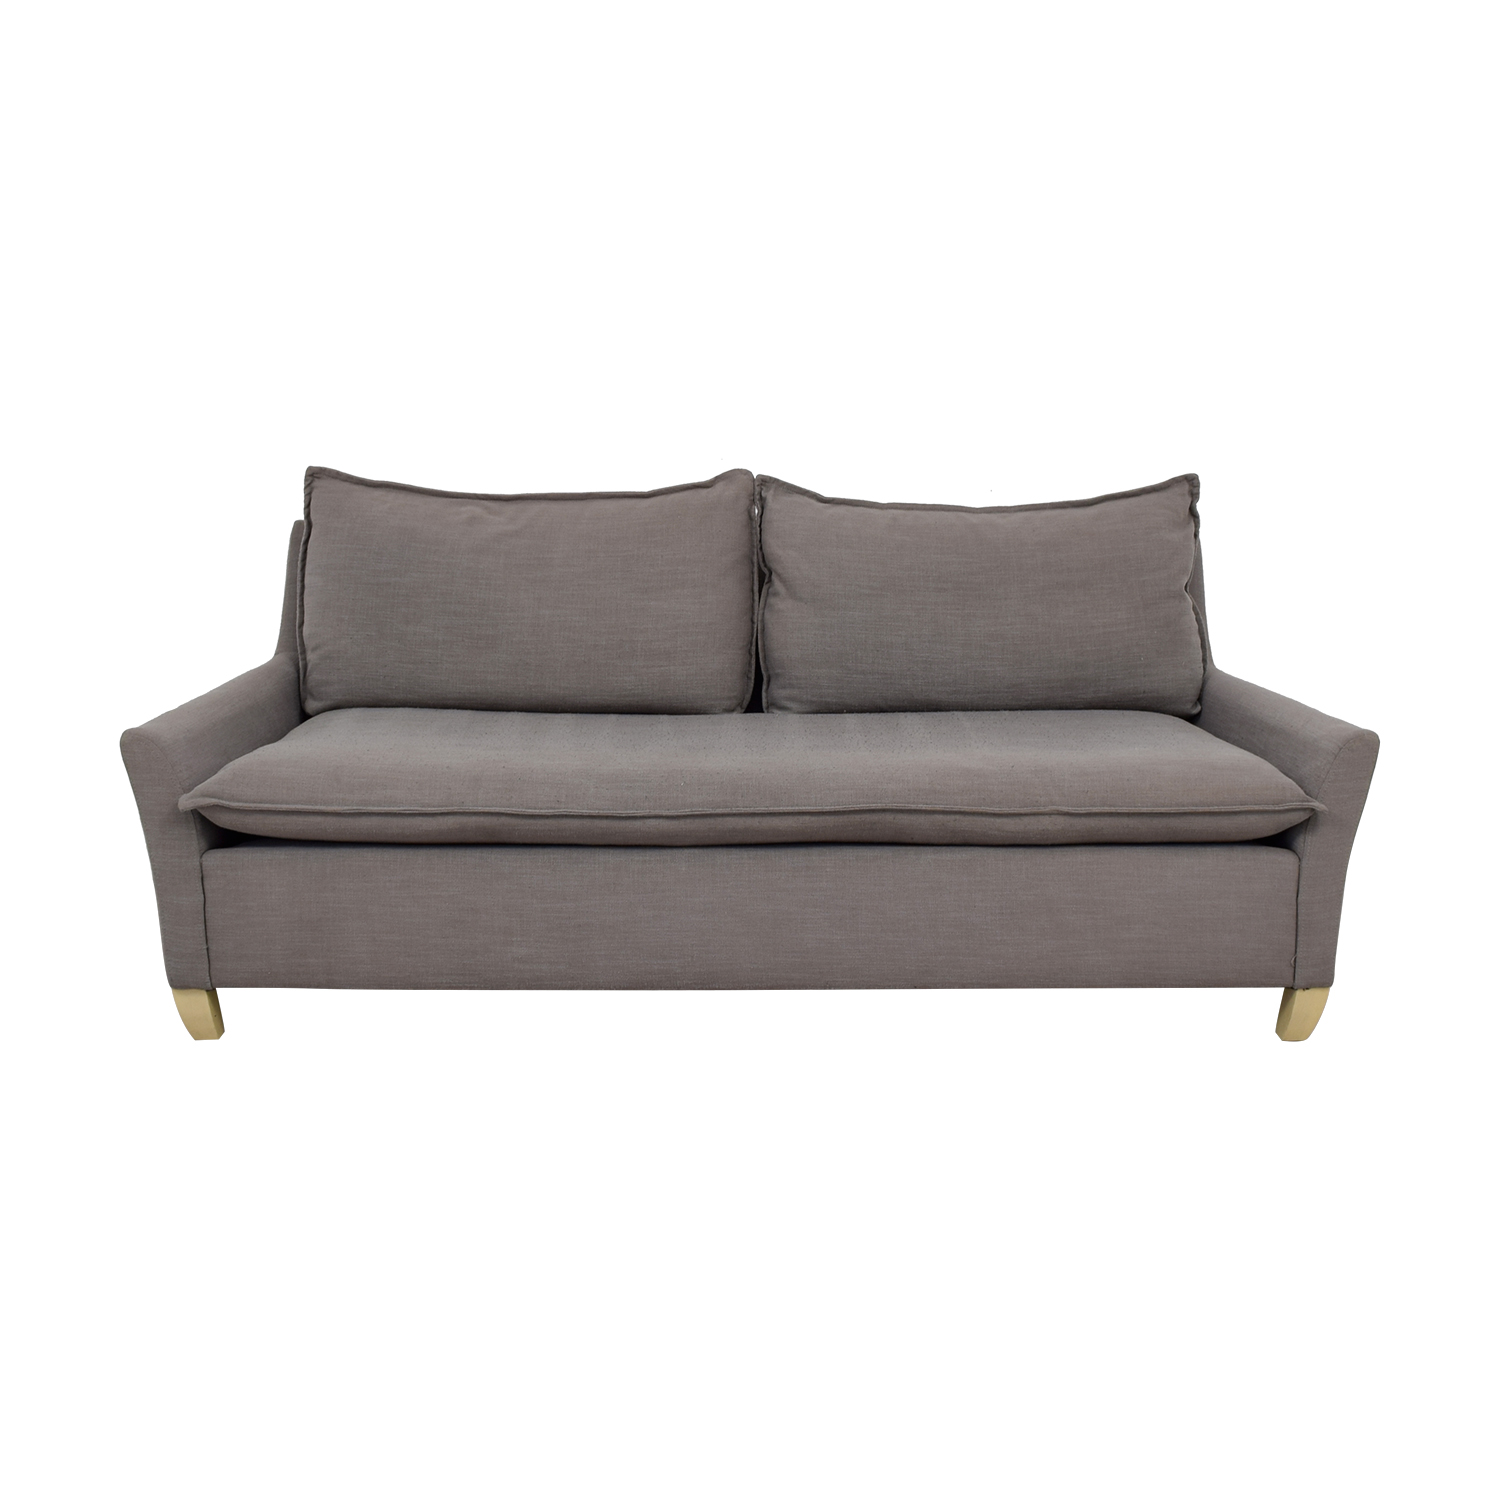 buy West Elm Grey Single Cushion Couch West Elm Sofas